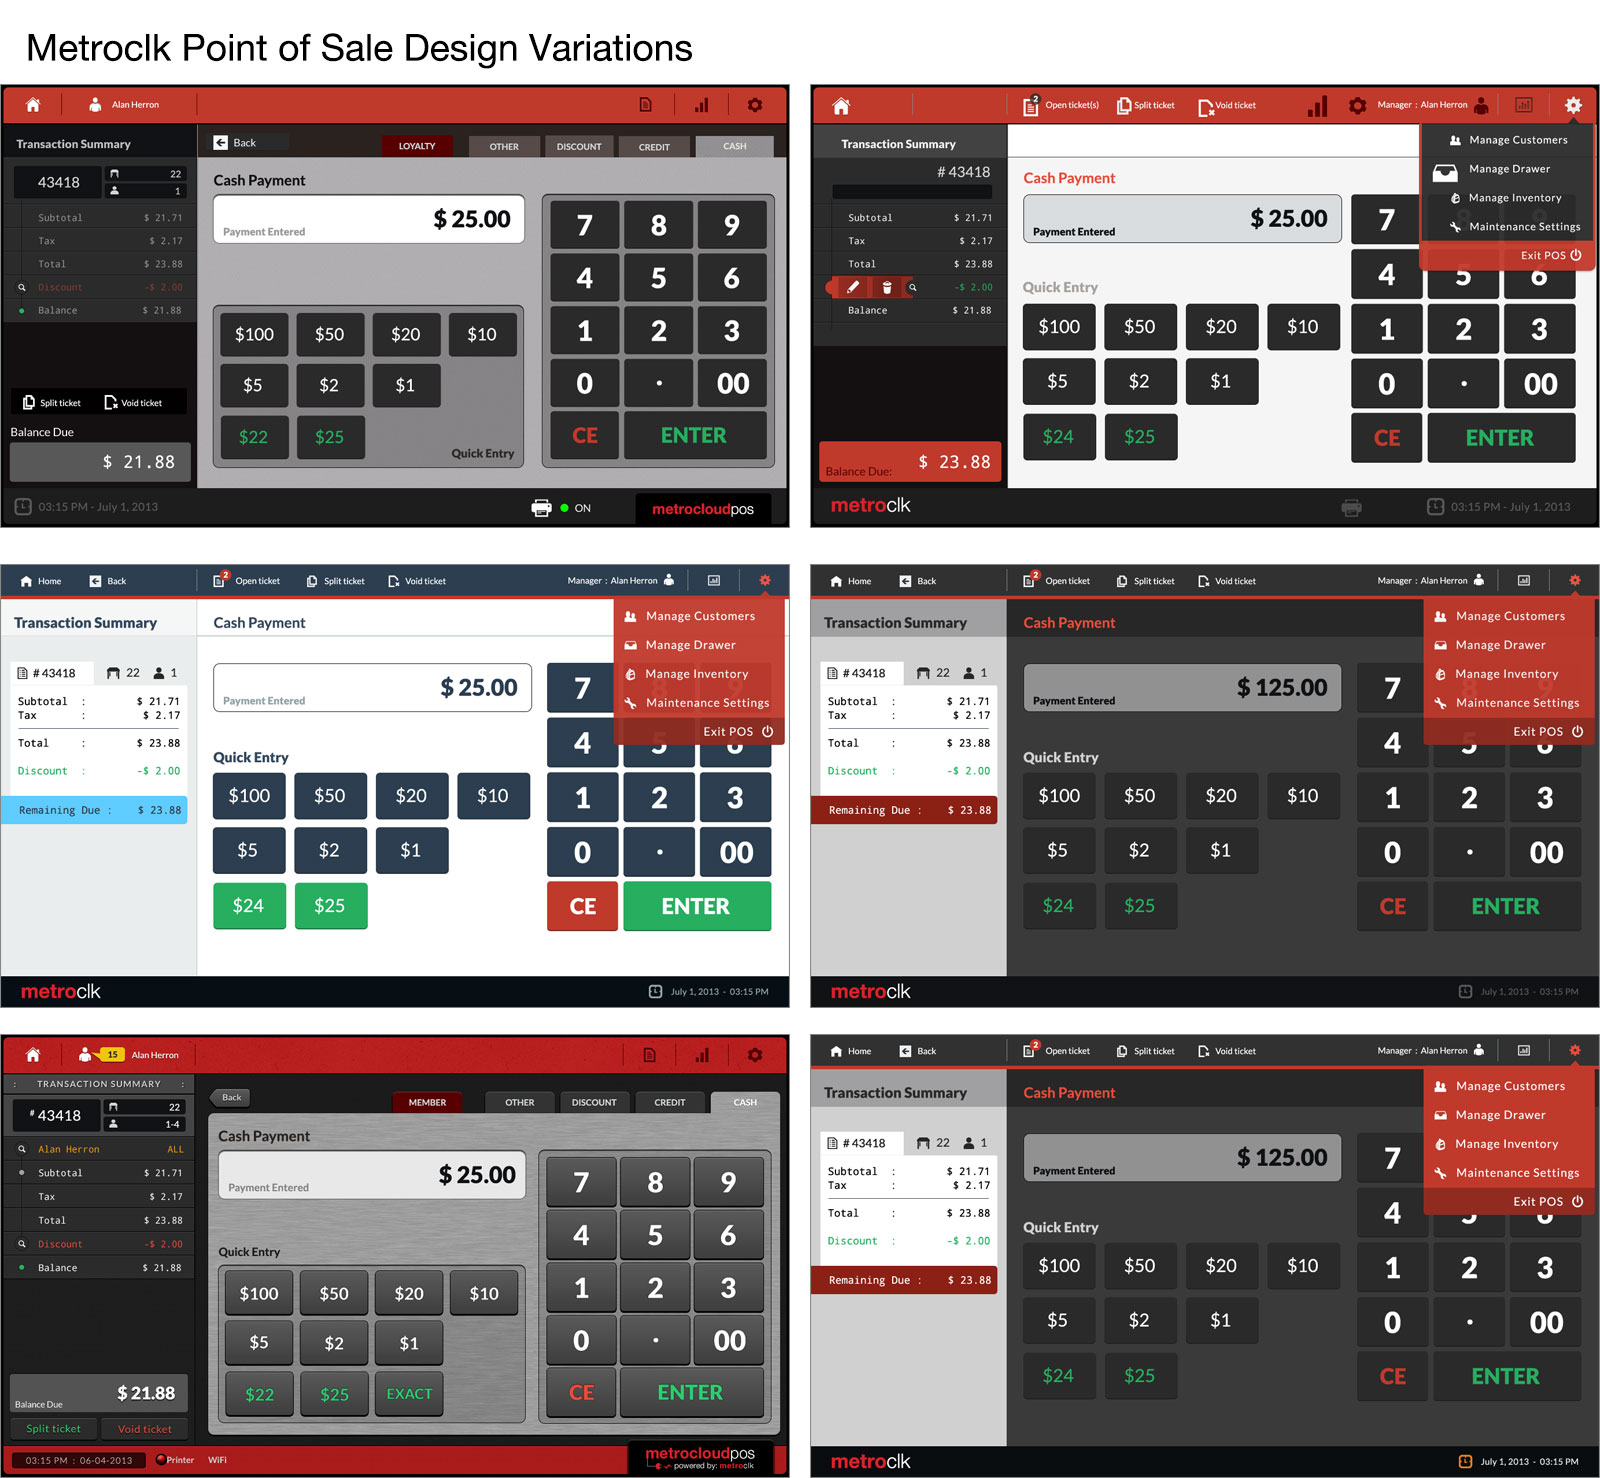 metroclk_pos_design_variations